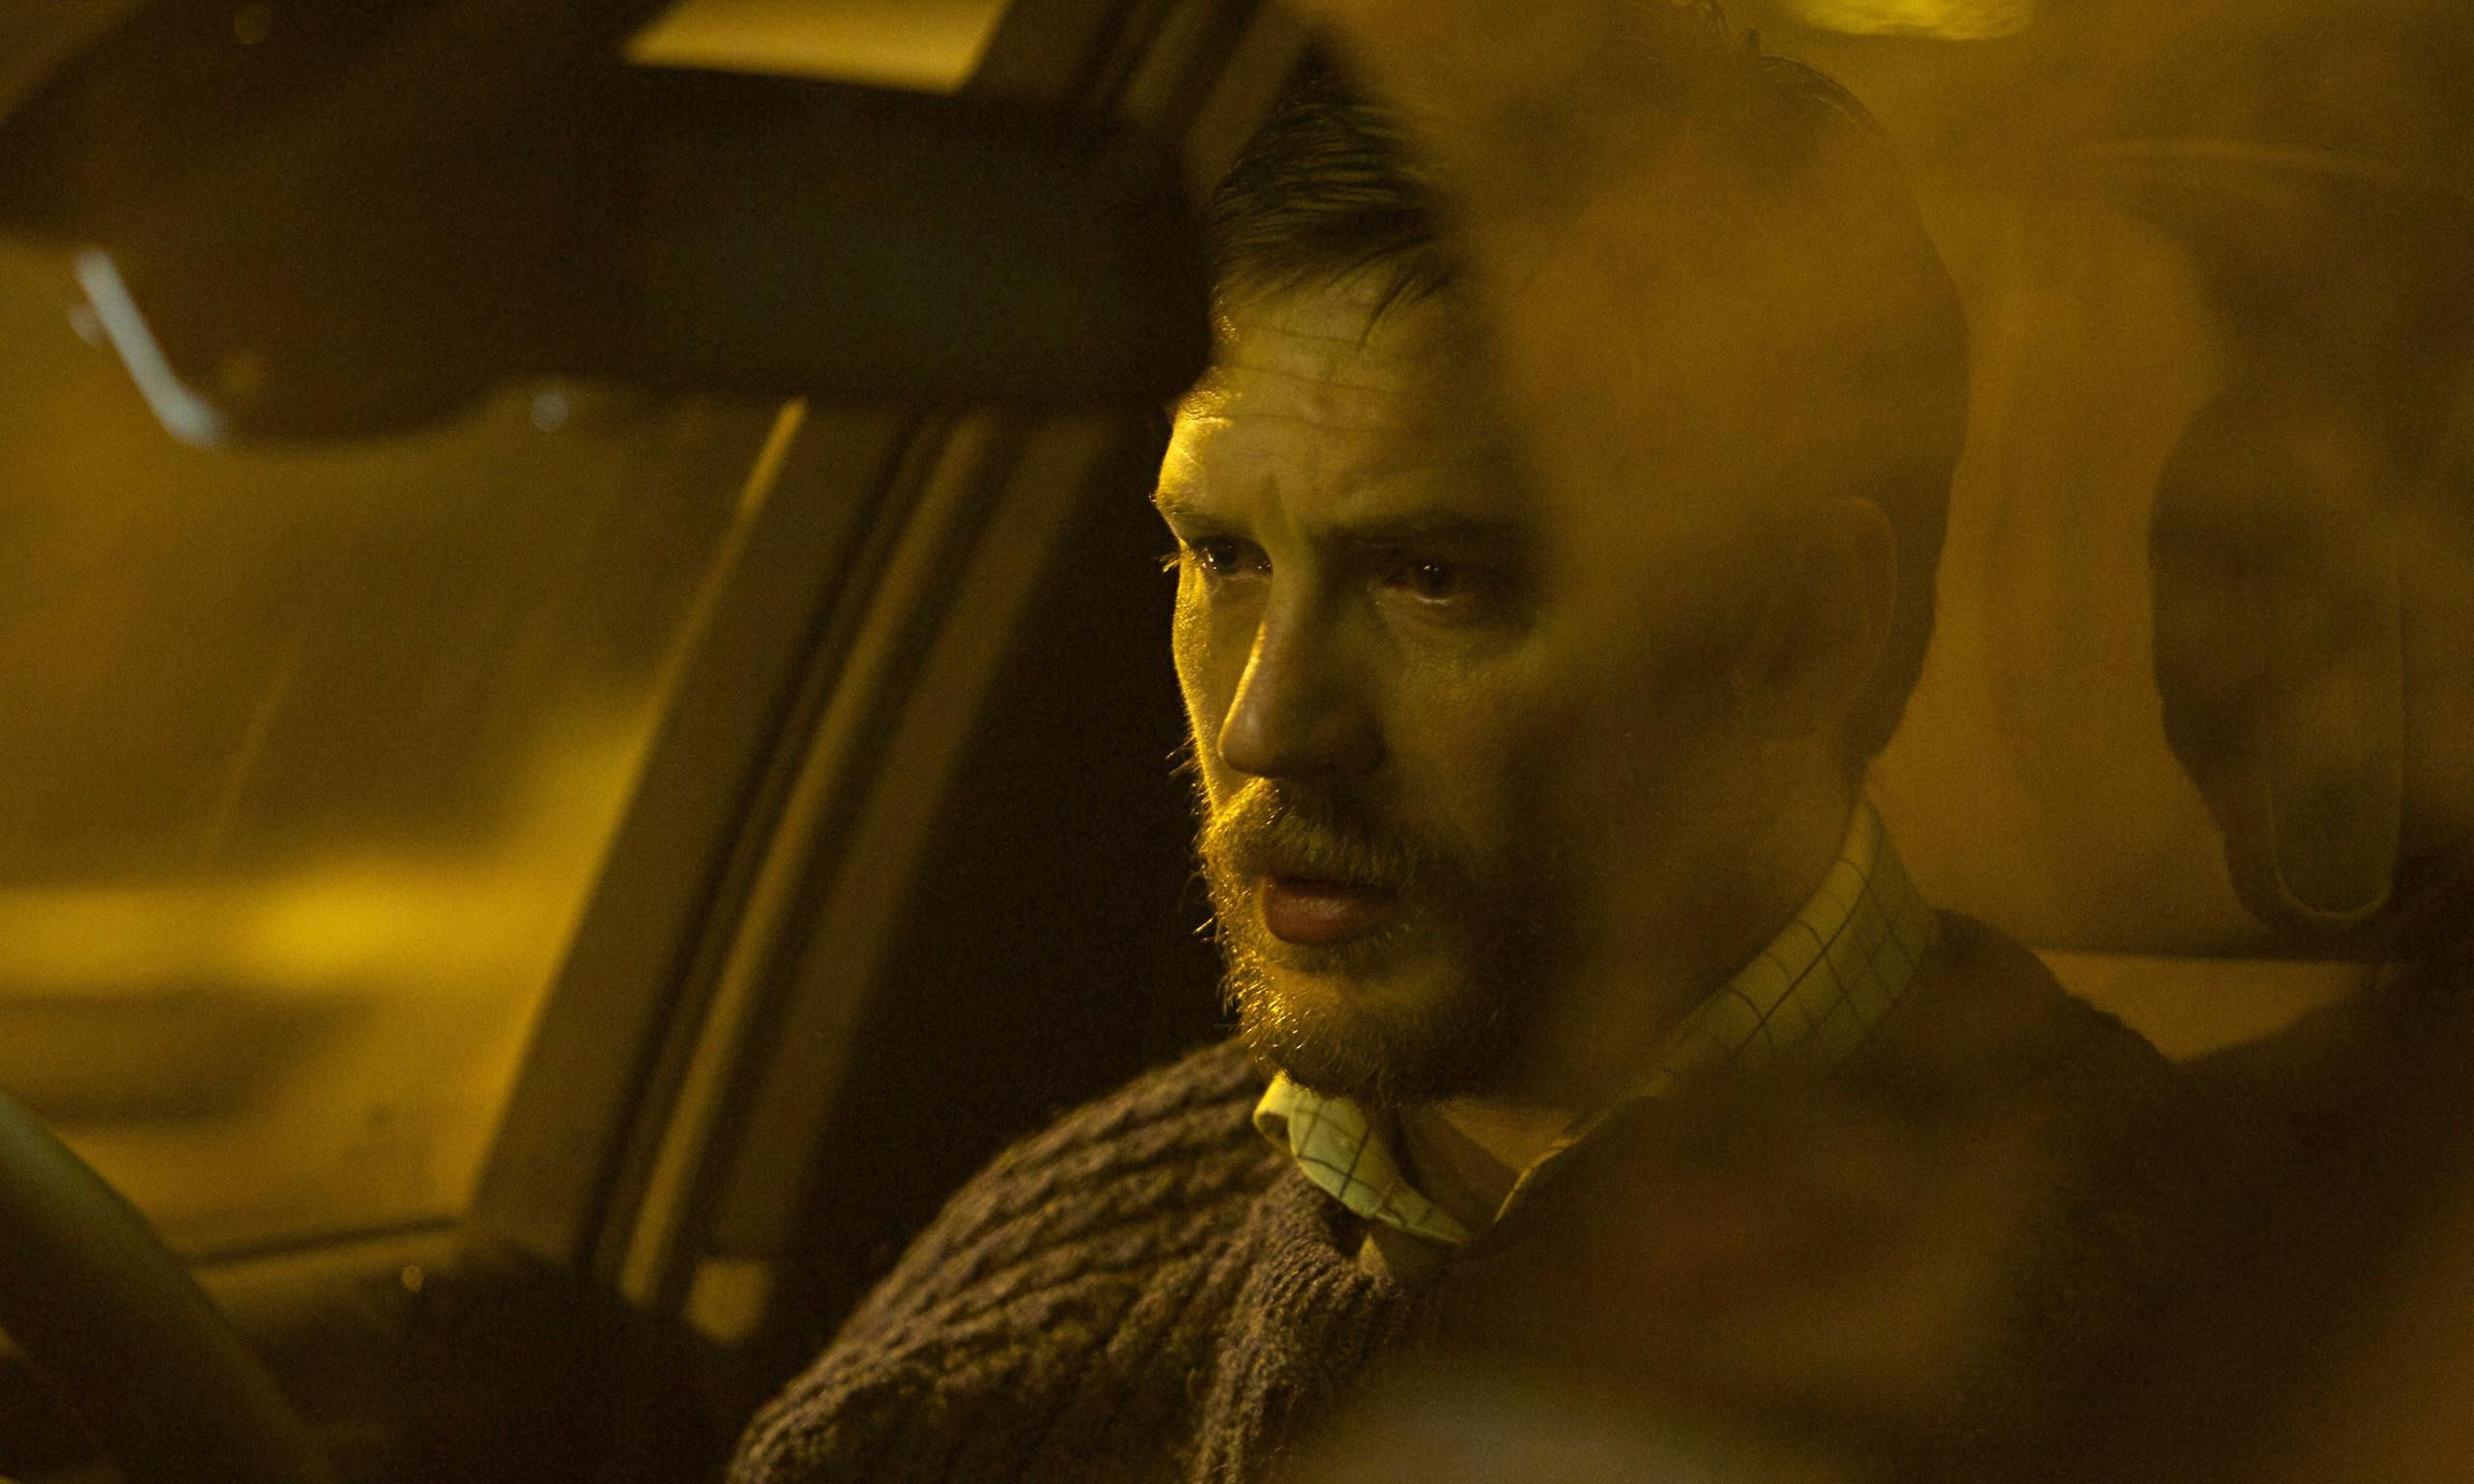 Locke faces the consequences of his actions